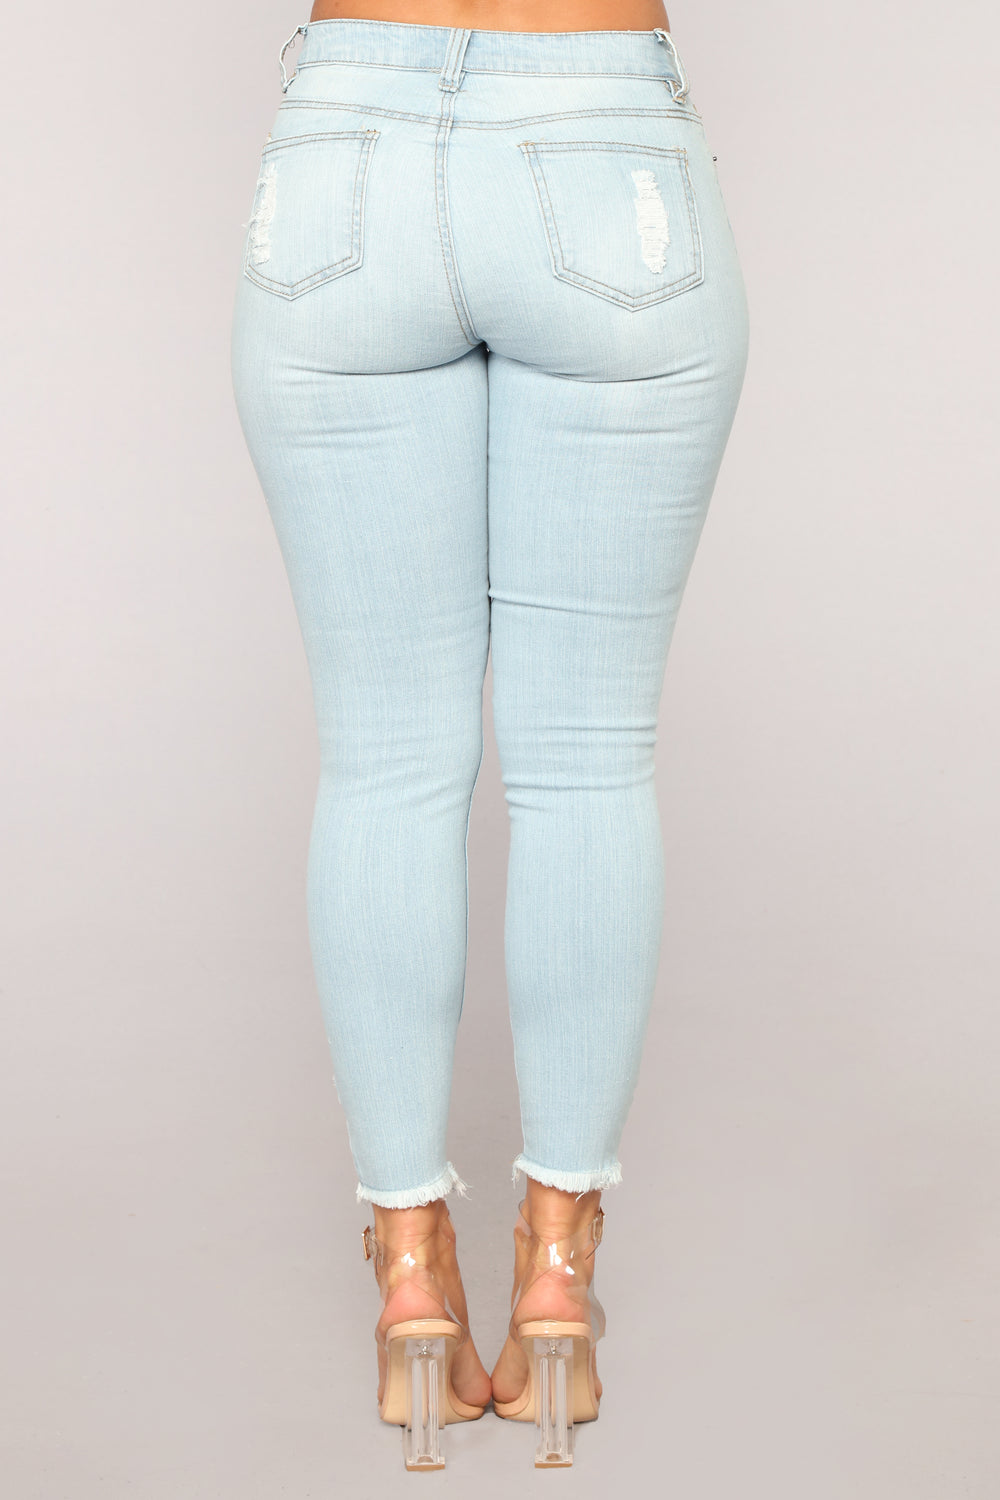 Genesis High Rise Distressed Jeans - Light Blue Wash